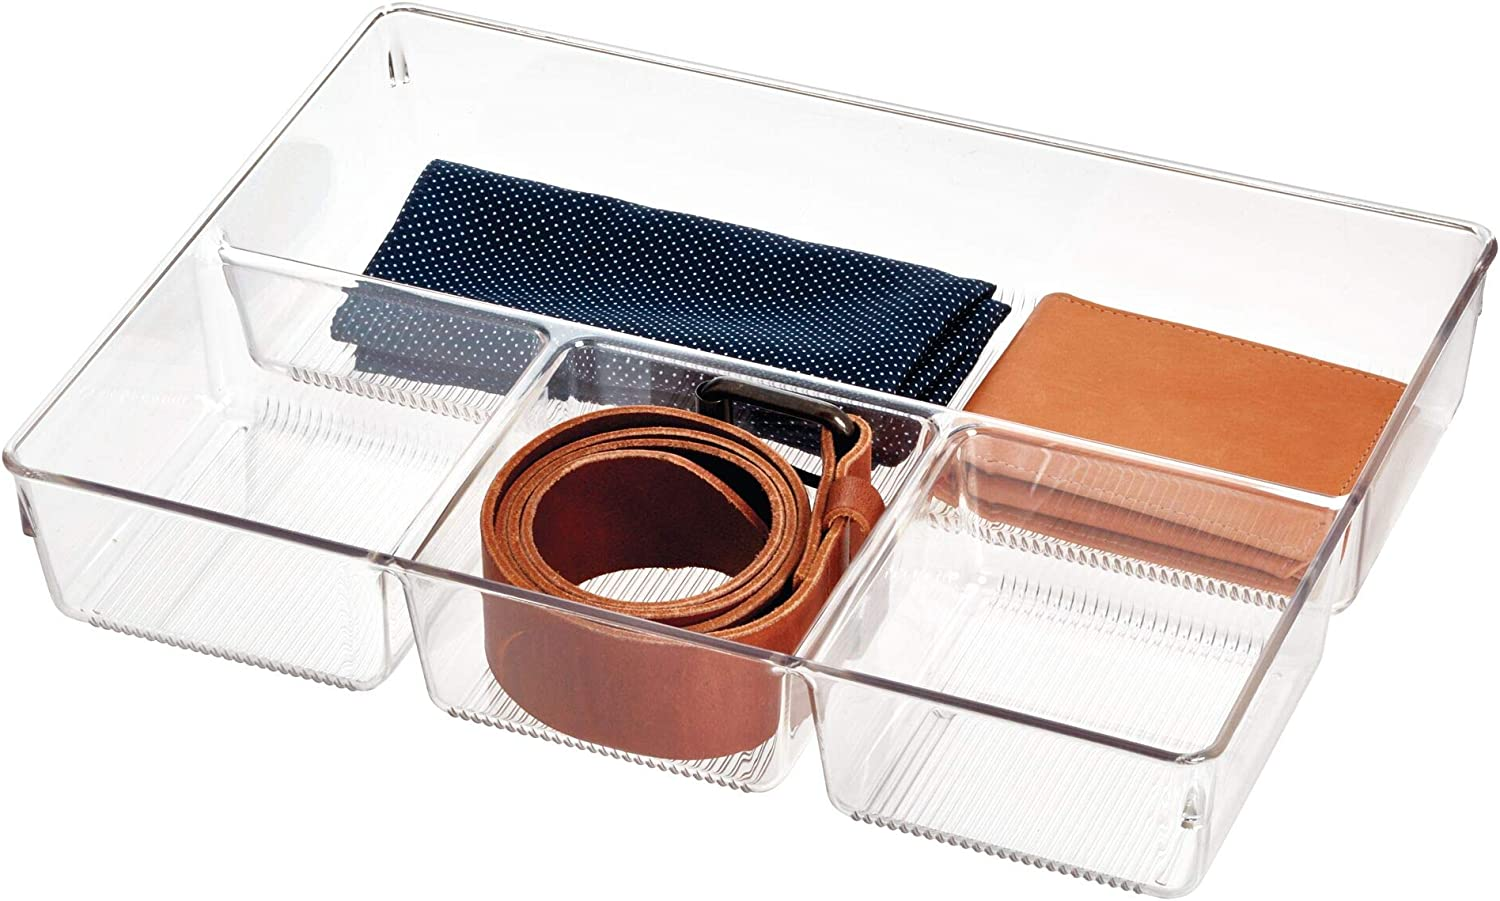 """iDesign Linus Plastic Divided Drawer Organizer, Storage Container for Vanity, Bathroom, Kitchen Drawers, 13"""" x 9"""" x 2.25"""" - Clear 71Au3Ebn9zL"""